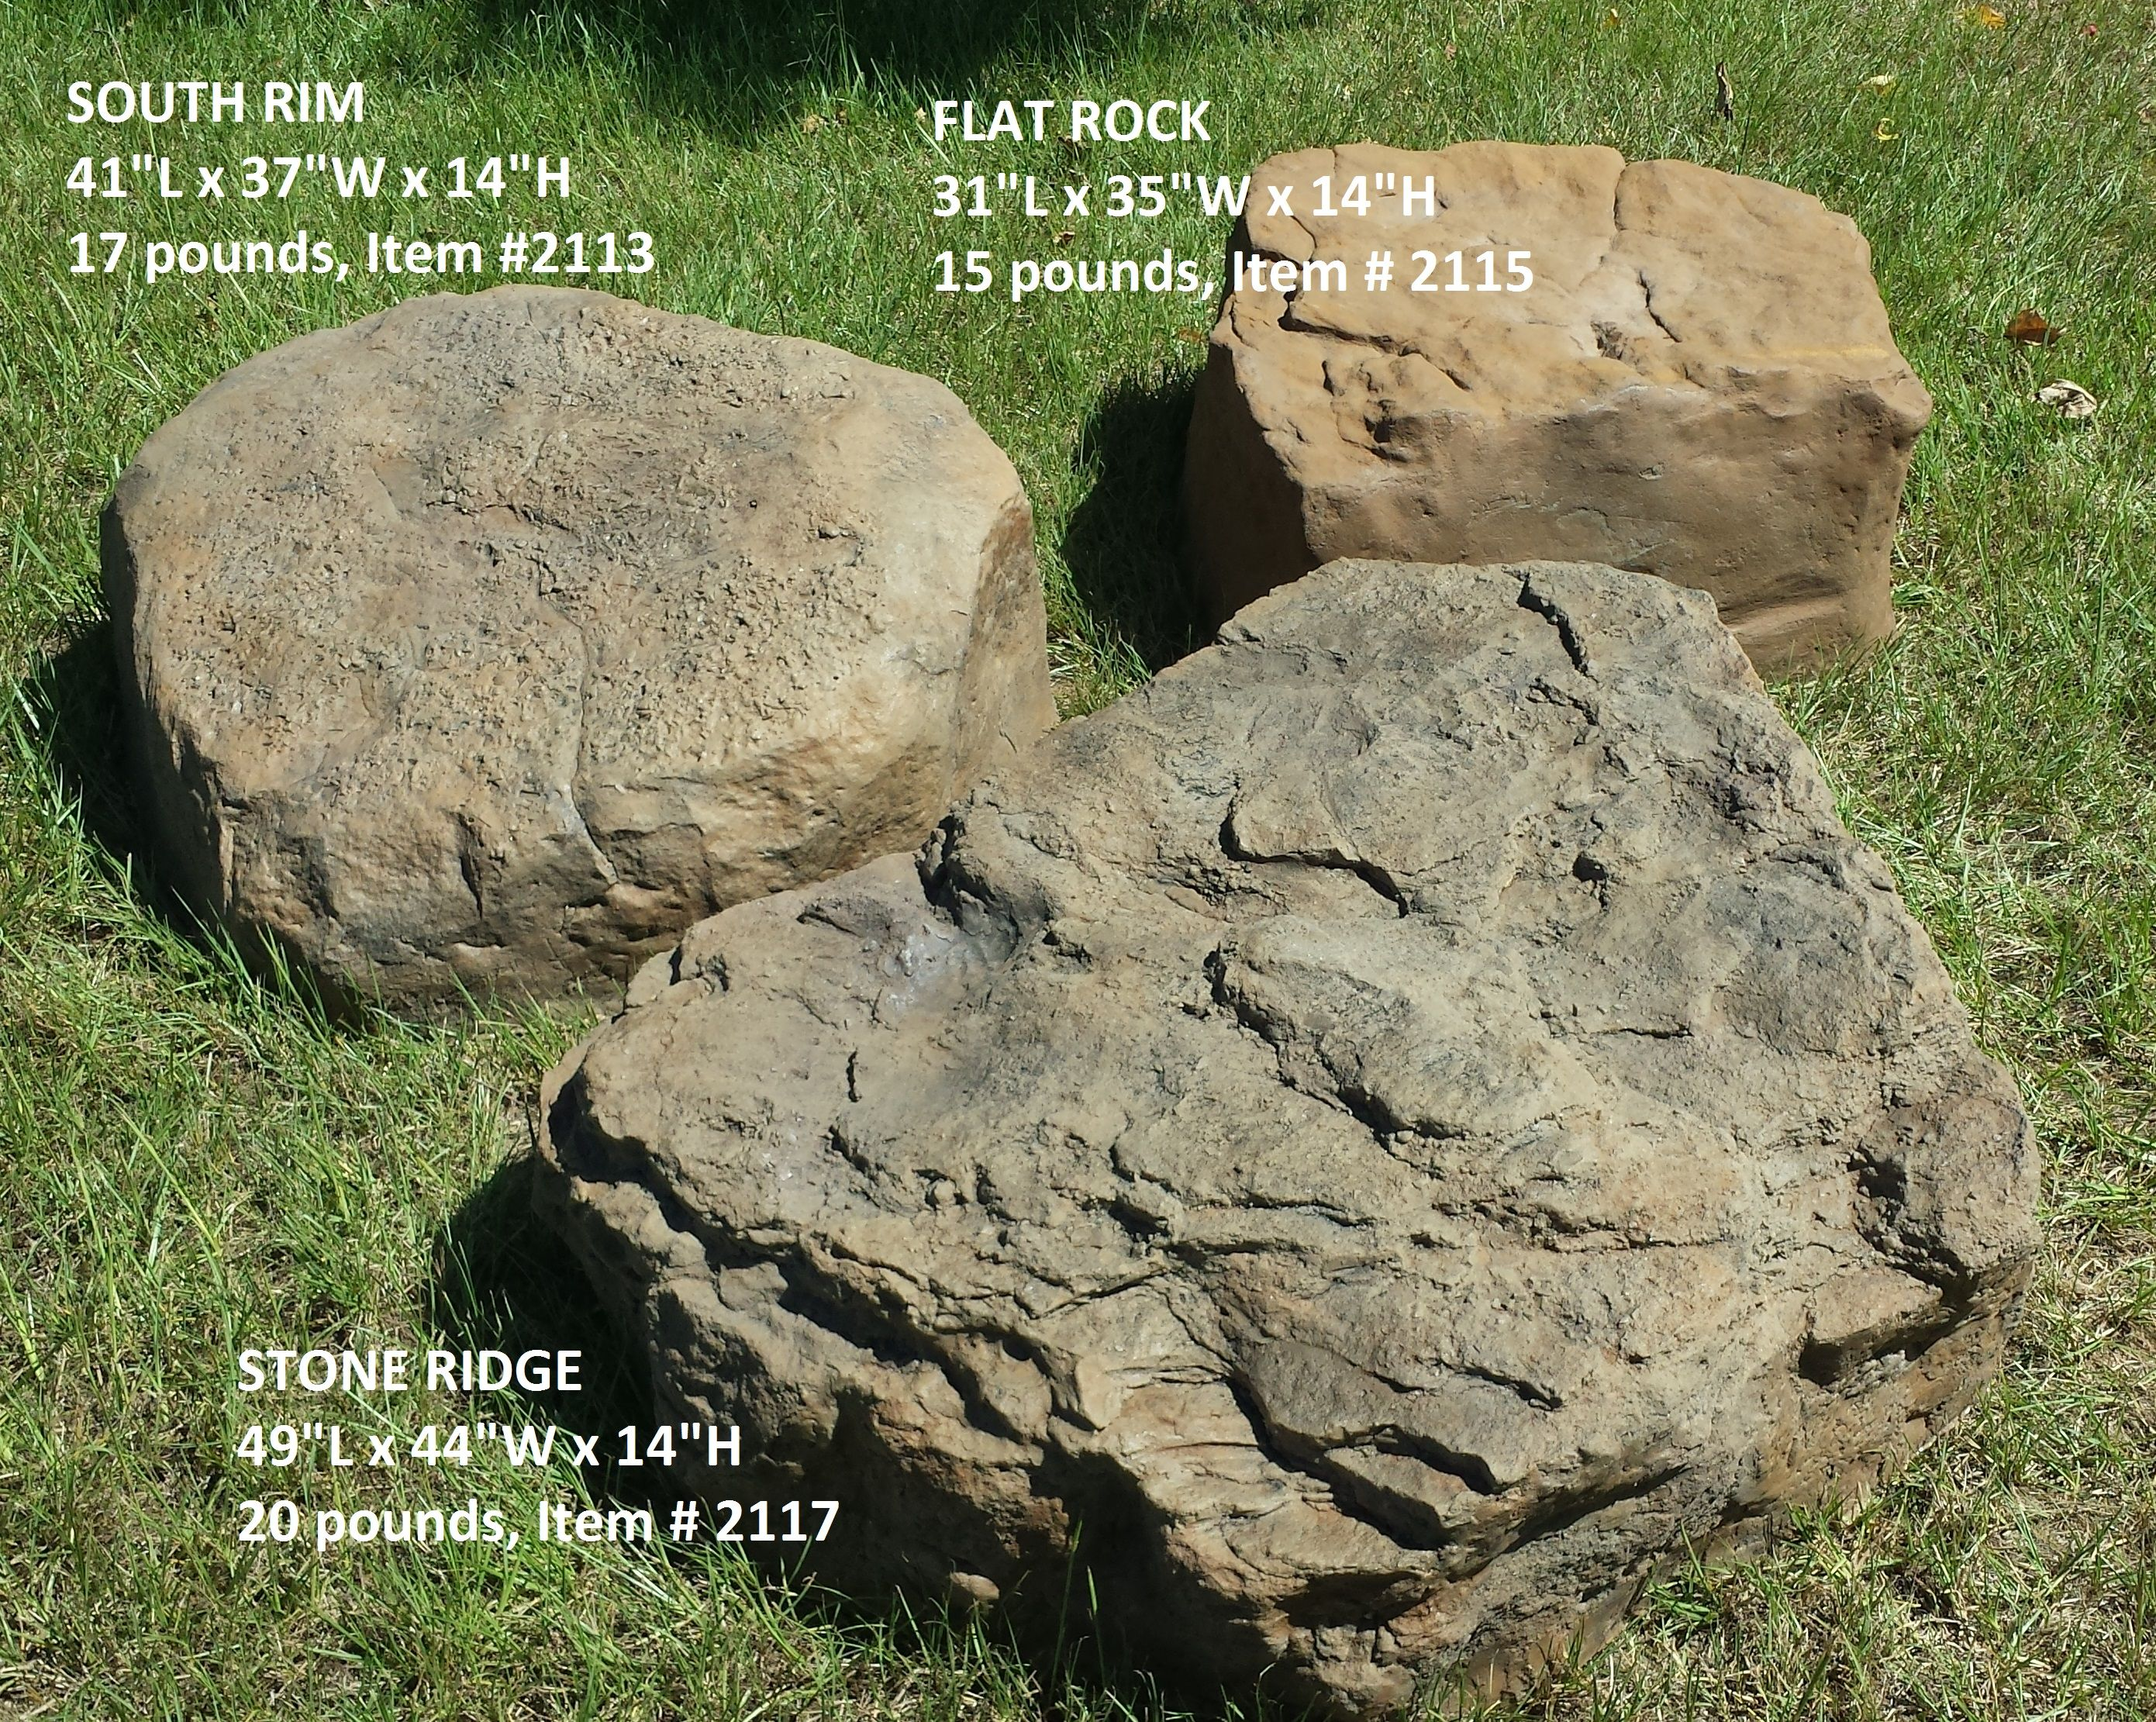 Fake Rock Septic Lid Cover Rocks Cover Those Unsightly Septic Lids With A Natural Looking Rock That Is Hol Septic Tank Covers Fake Rock Landscaping With Rocks